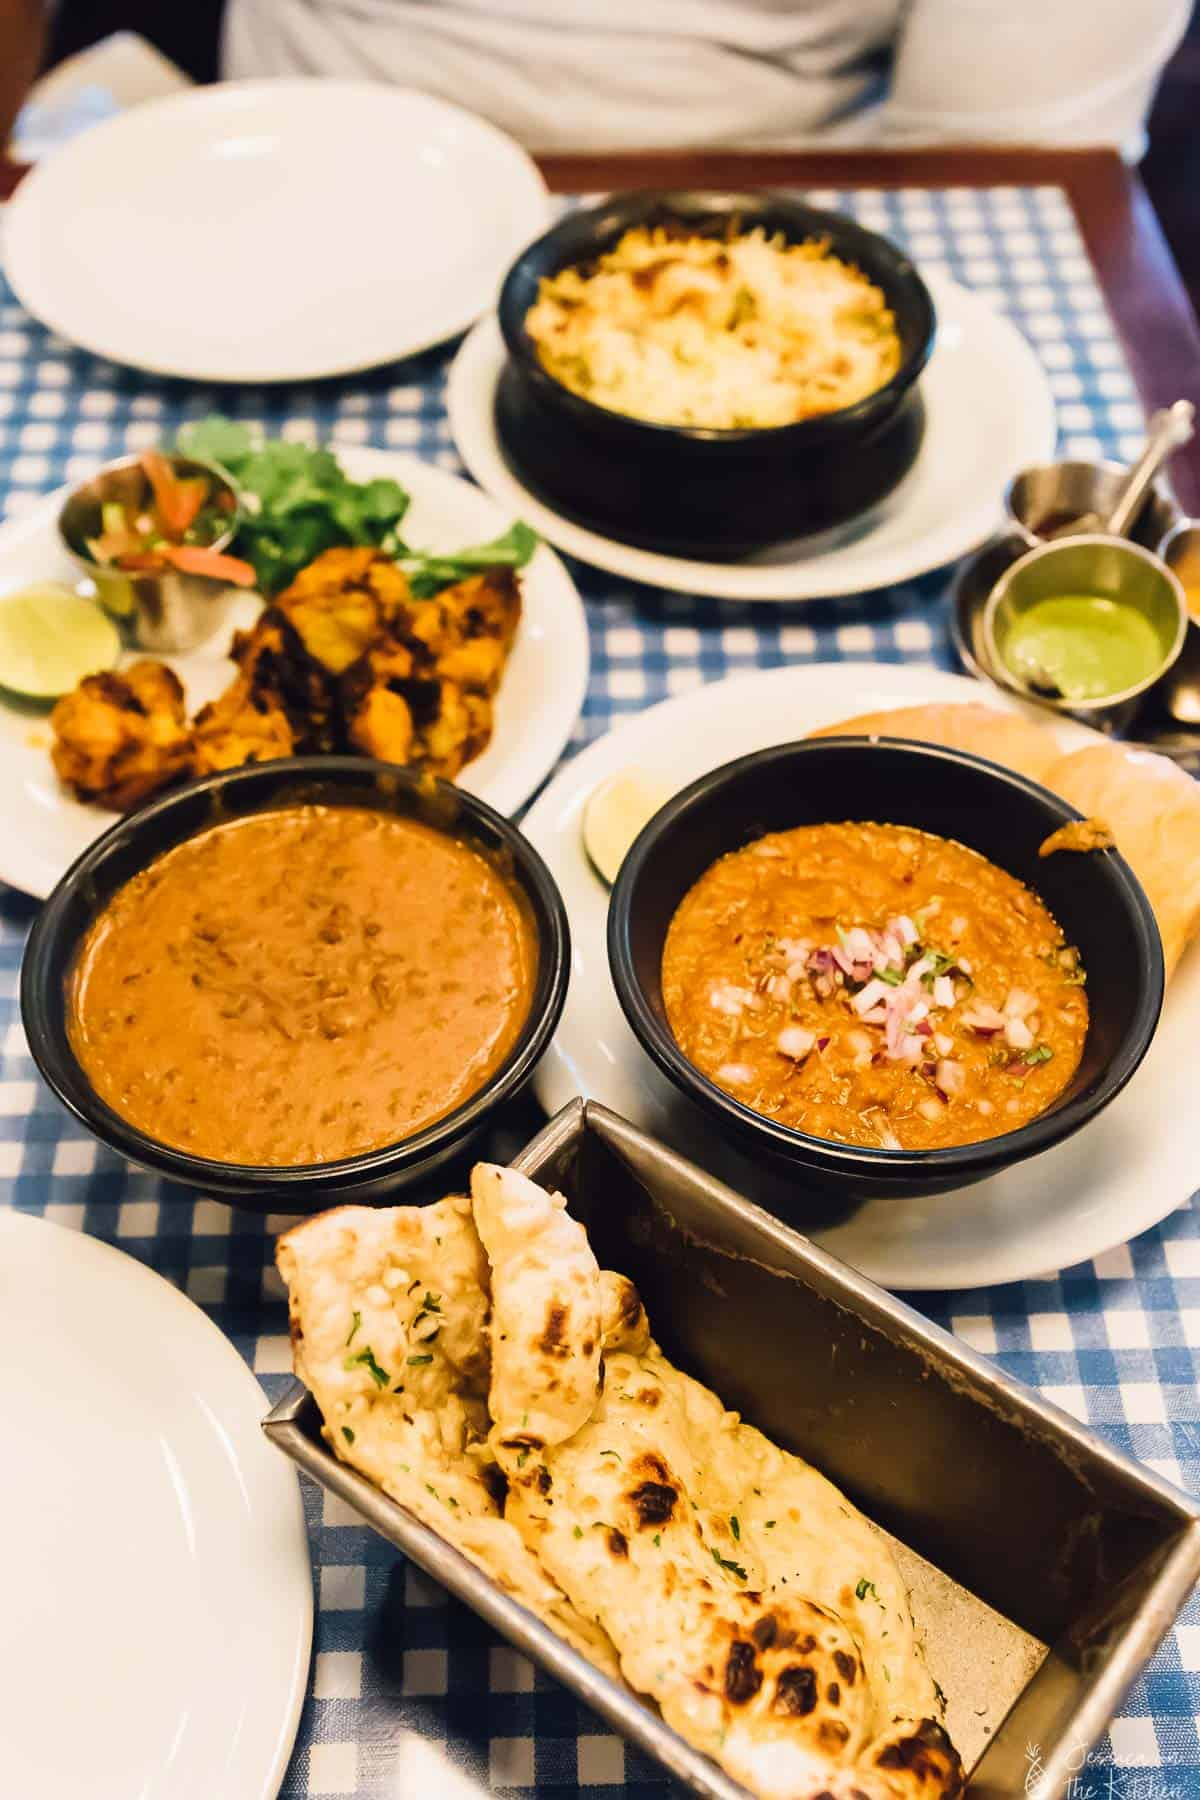 A table spread with bowls of curry and naan bread.